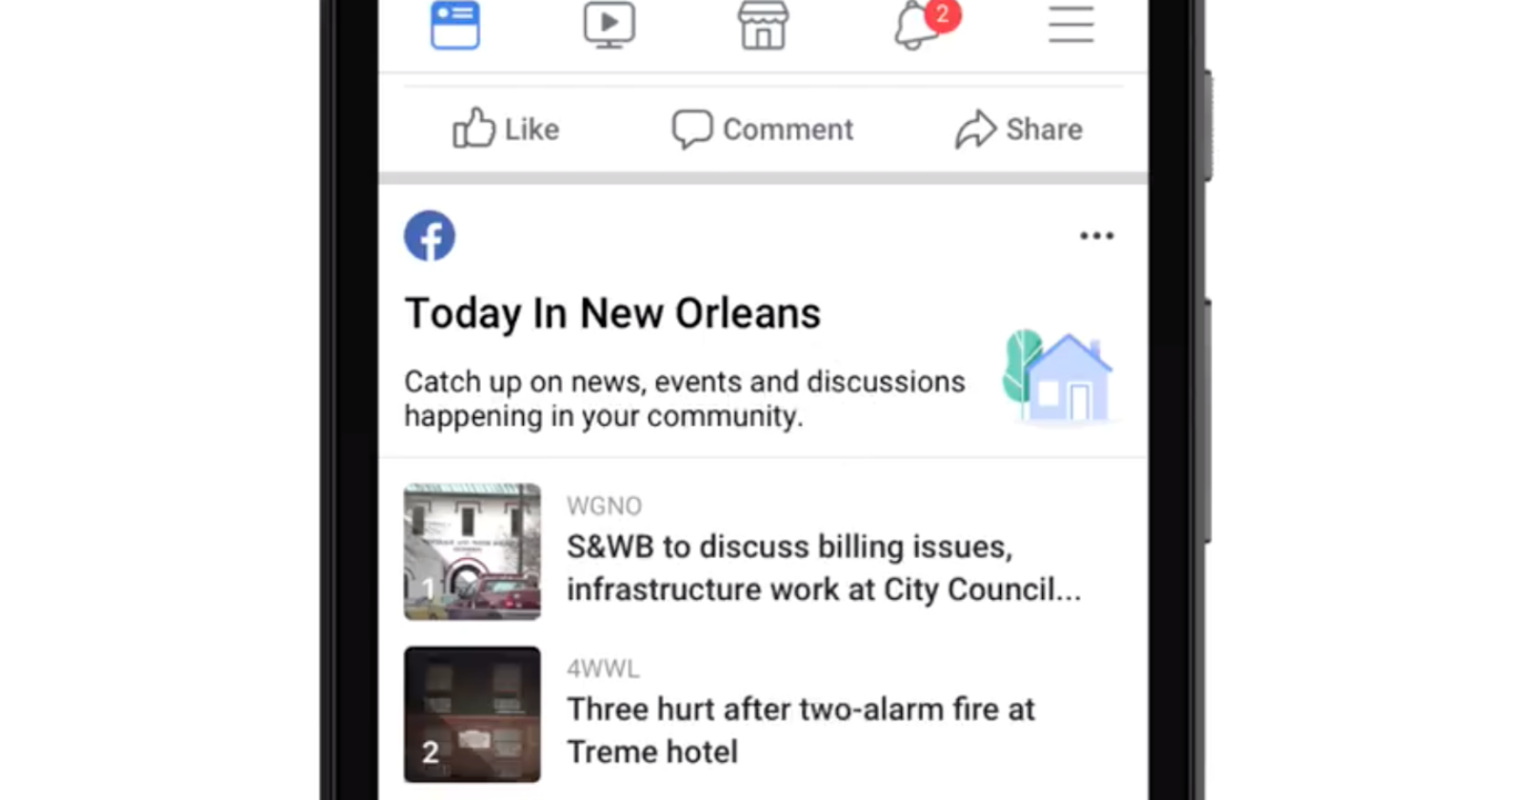 Facebook Makes it Easier to Find Local News and Information